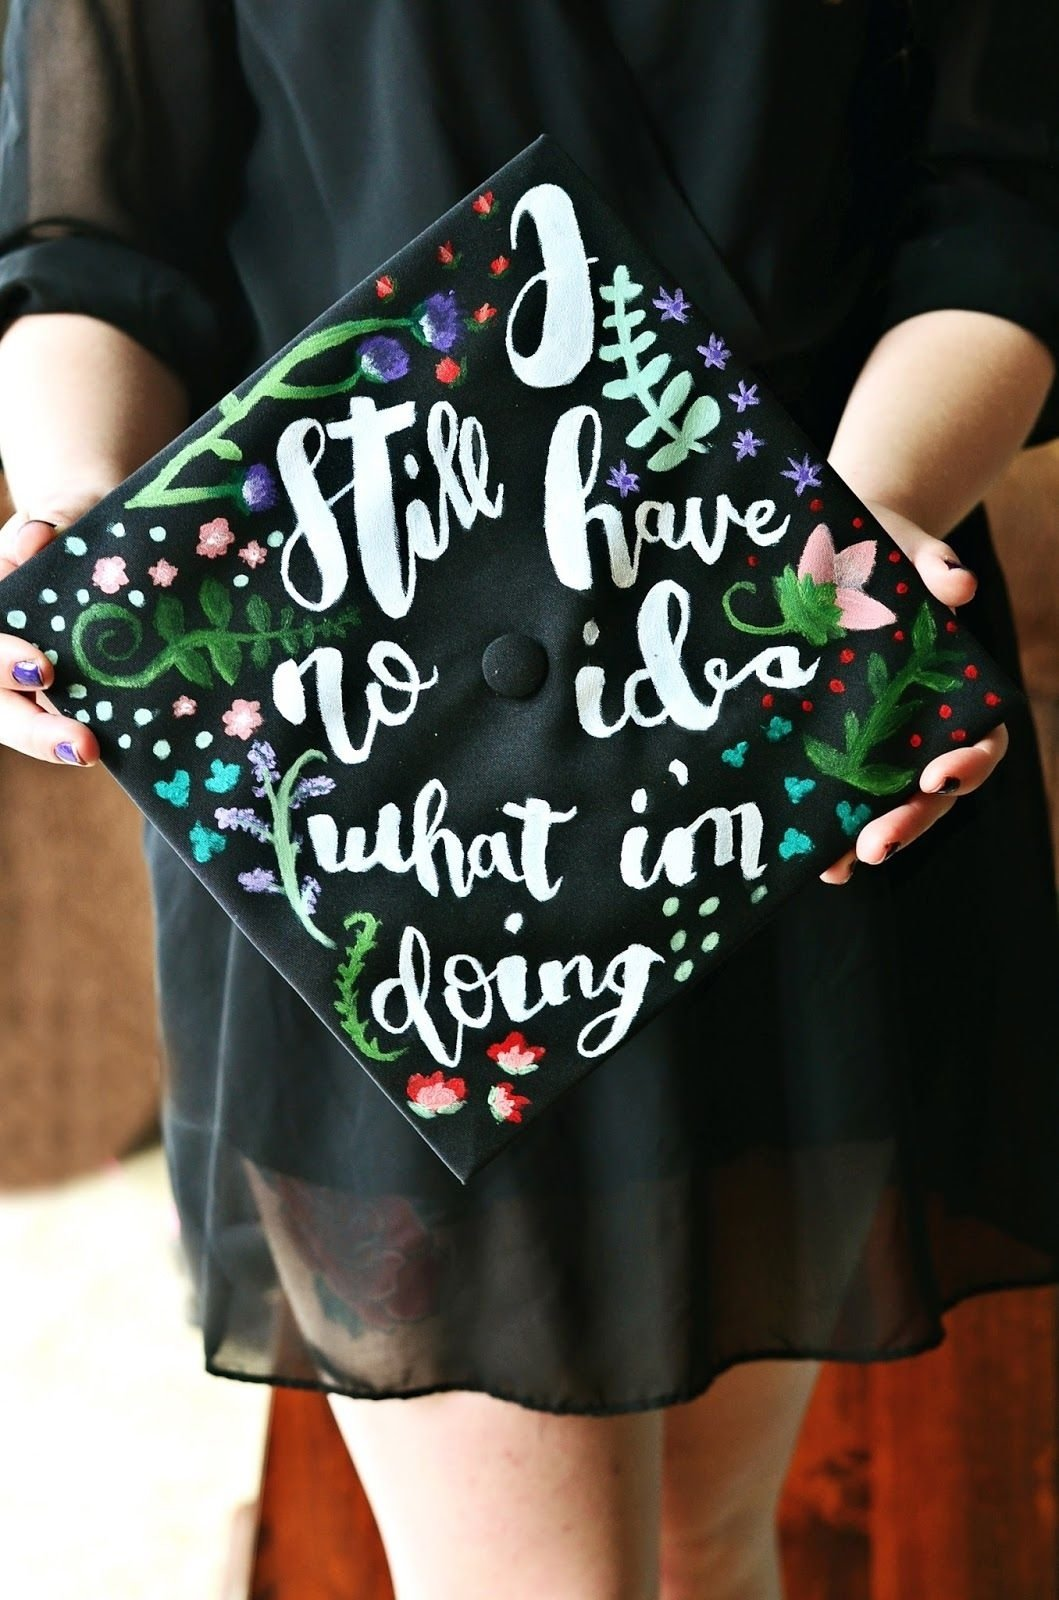 10 Most Recommended College Graduation Cap Decoration Ideas graduation cap decoration idea i still have no idea what im doing 2020